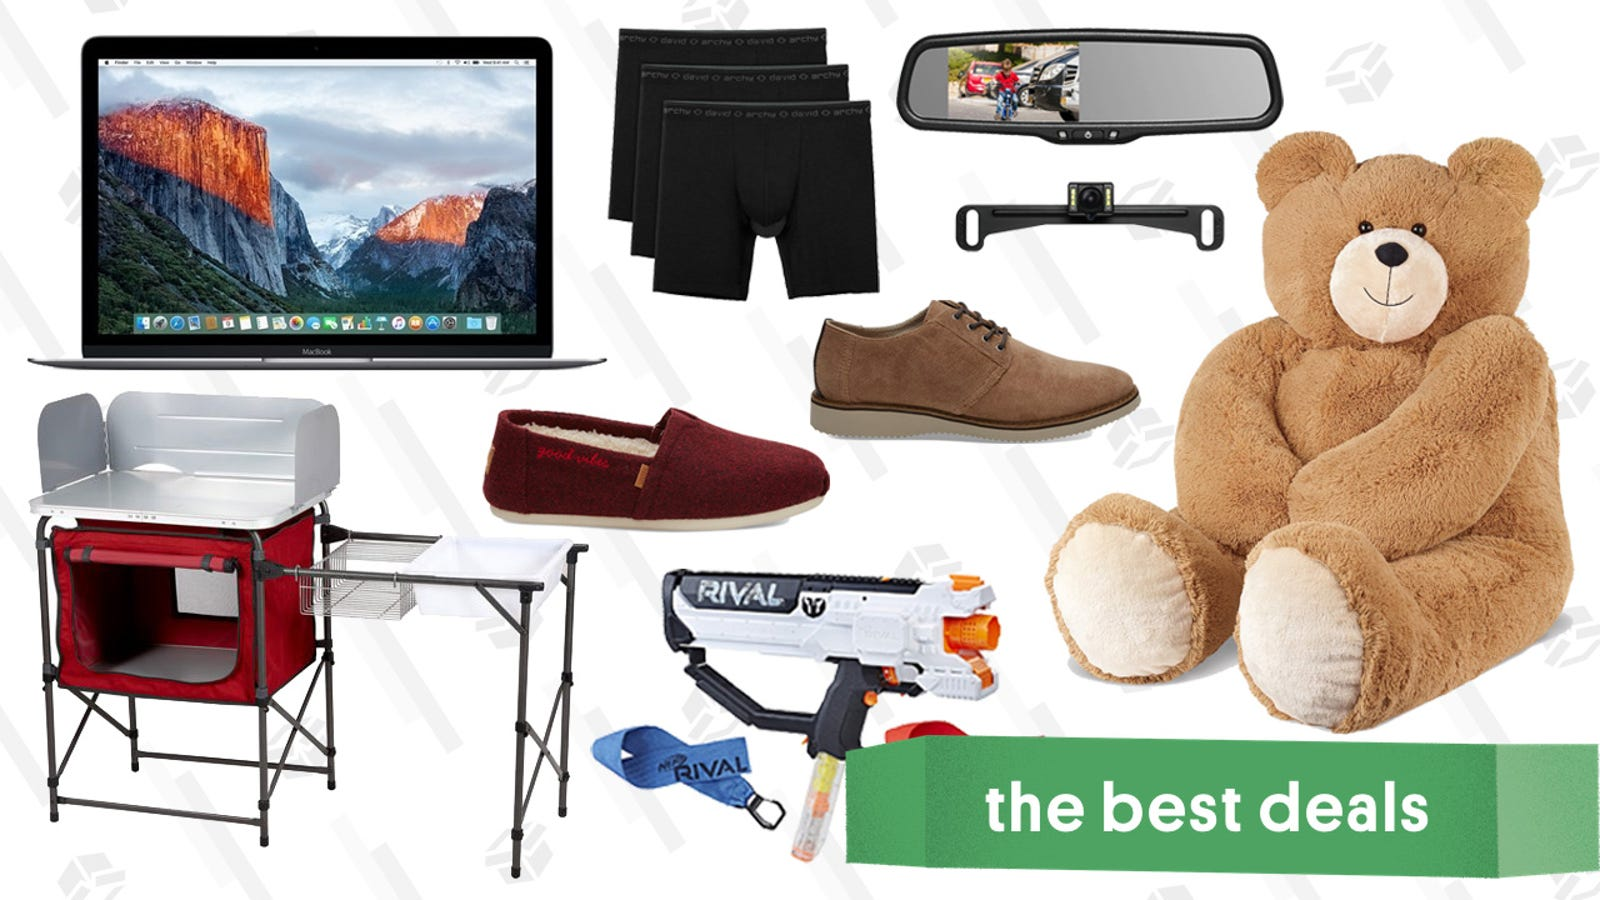 QnA VBage Wednesday's Best Deals: Camp Kitchens, TOMS, Giant Teddy Bears, and More